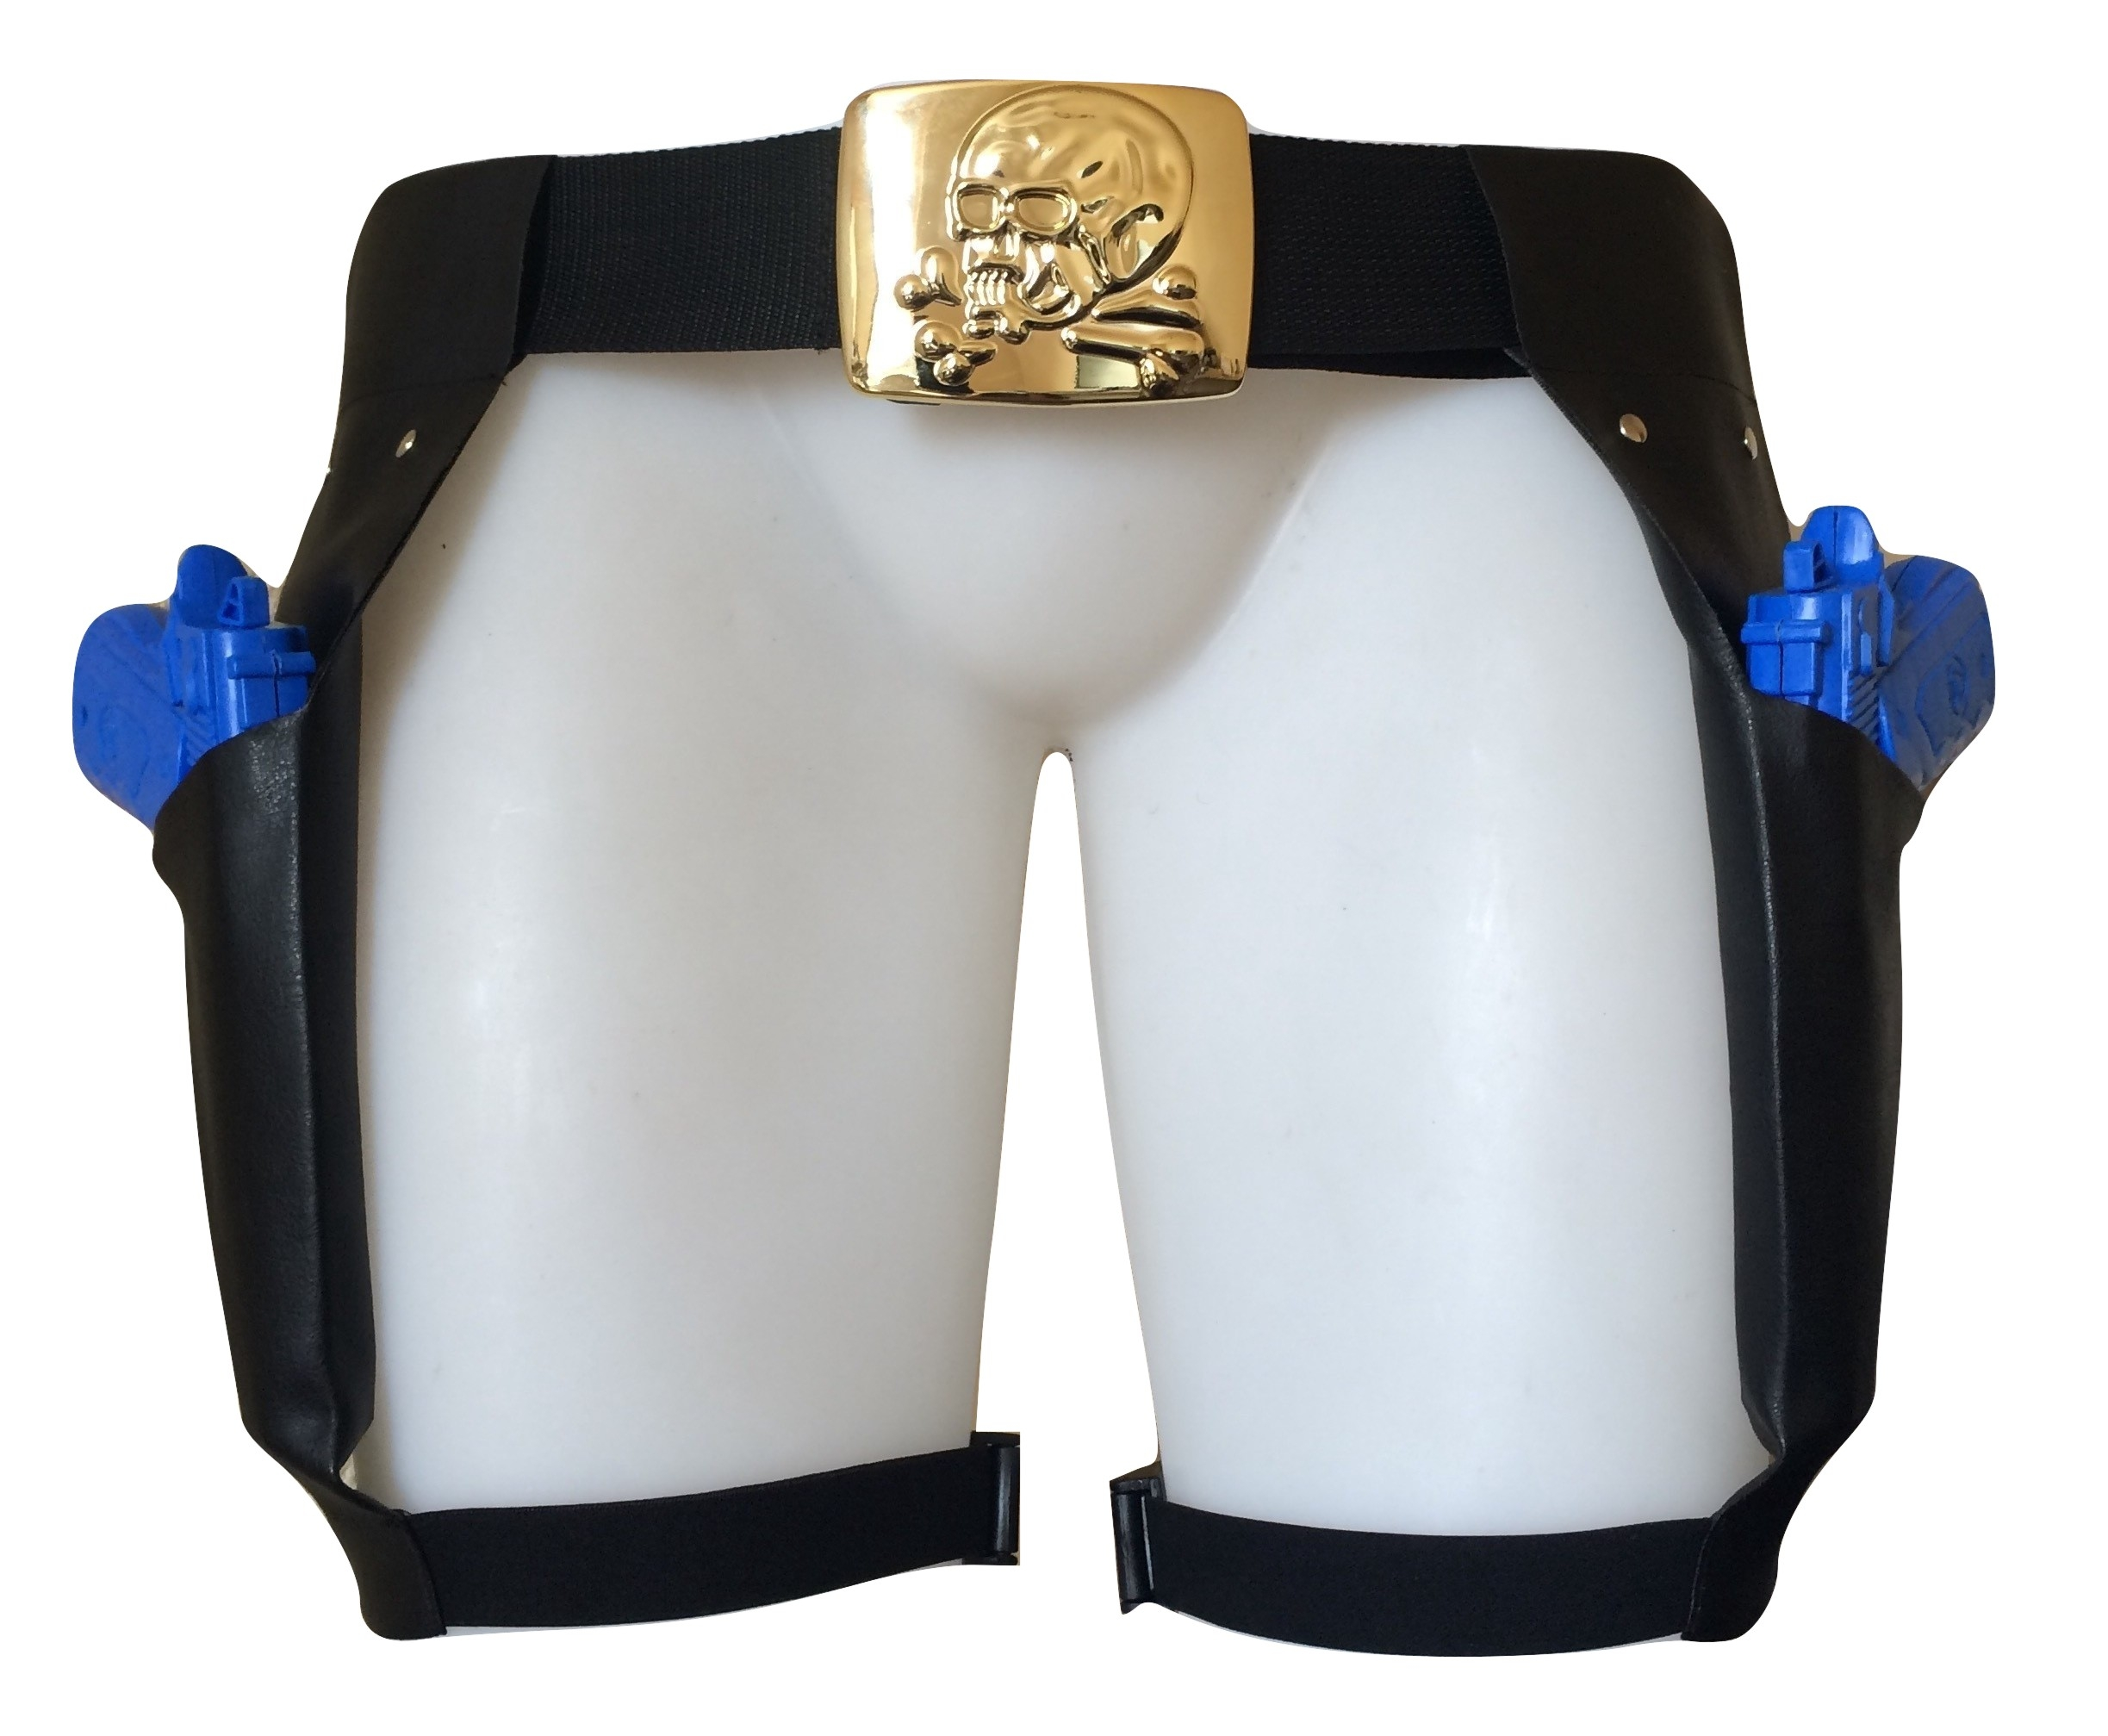 Lara Croft Fancy Dress Holster Set